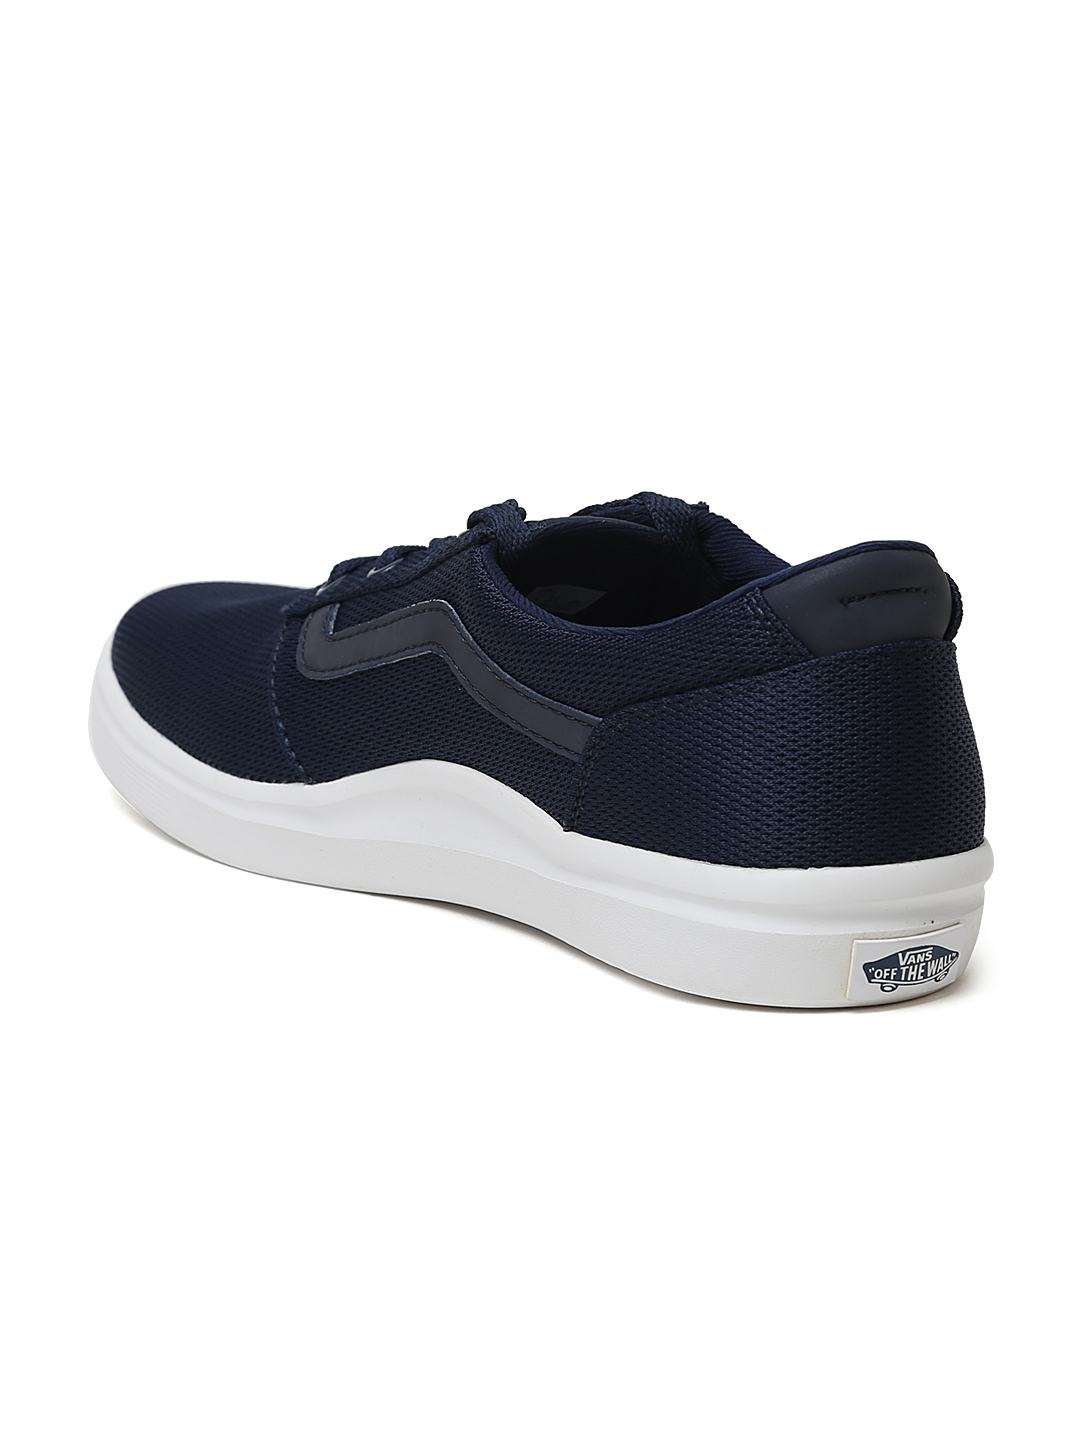 d96c86c8262 Buy Vans Men Navy Blue Chapman Lite Sneakers - Casual Shoes for Men ...